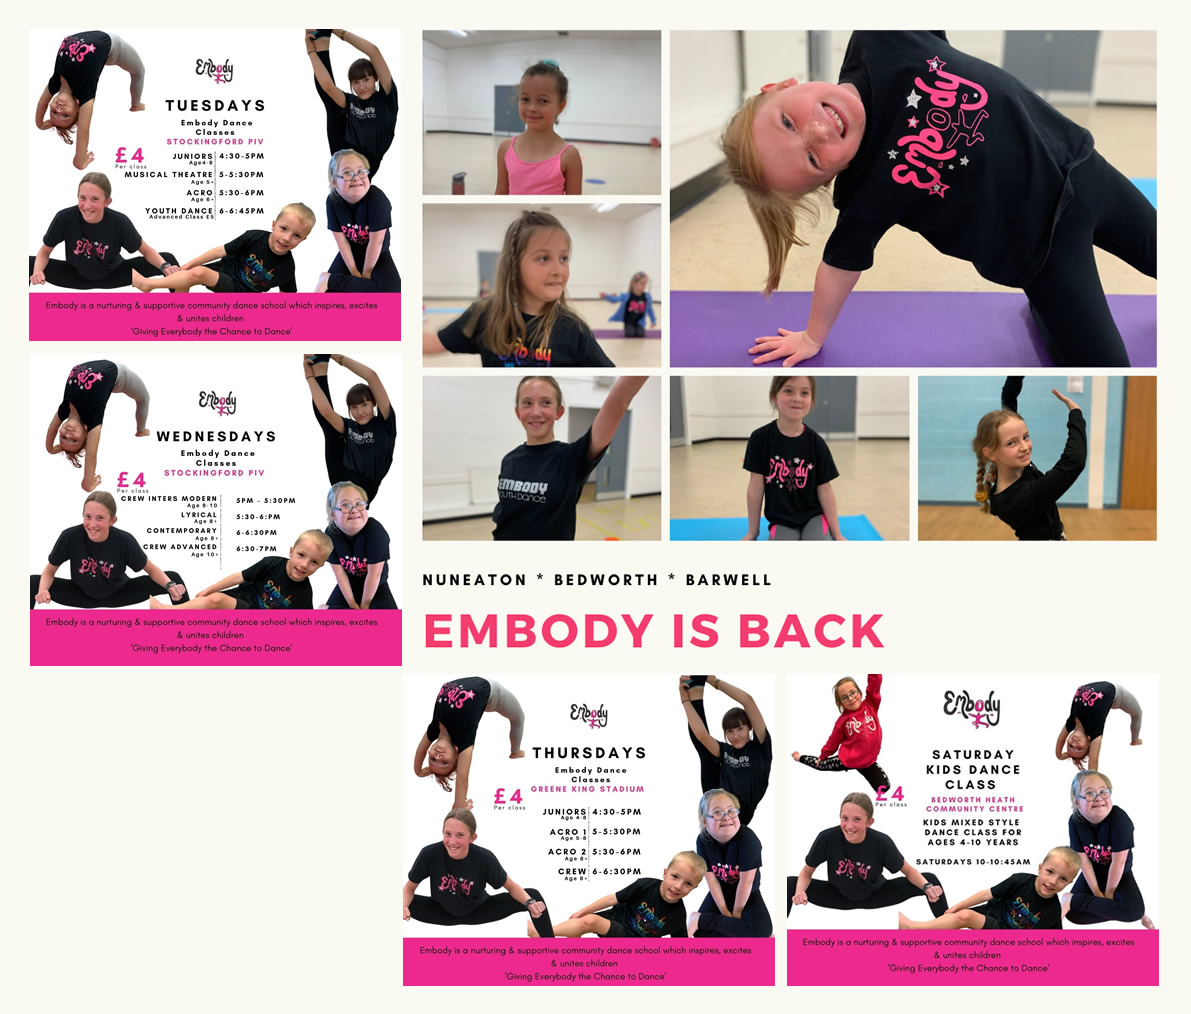 Embody – Giving everybody the chance to dance